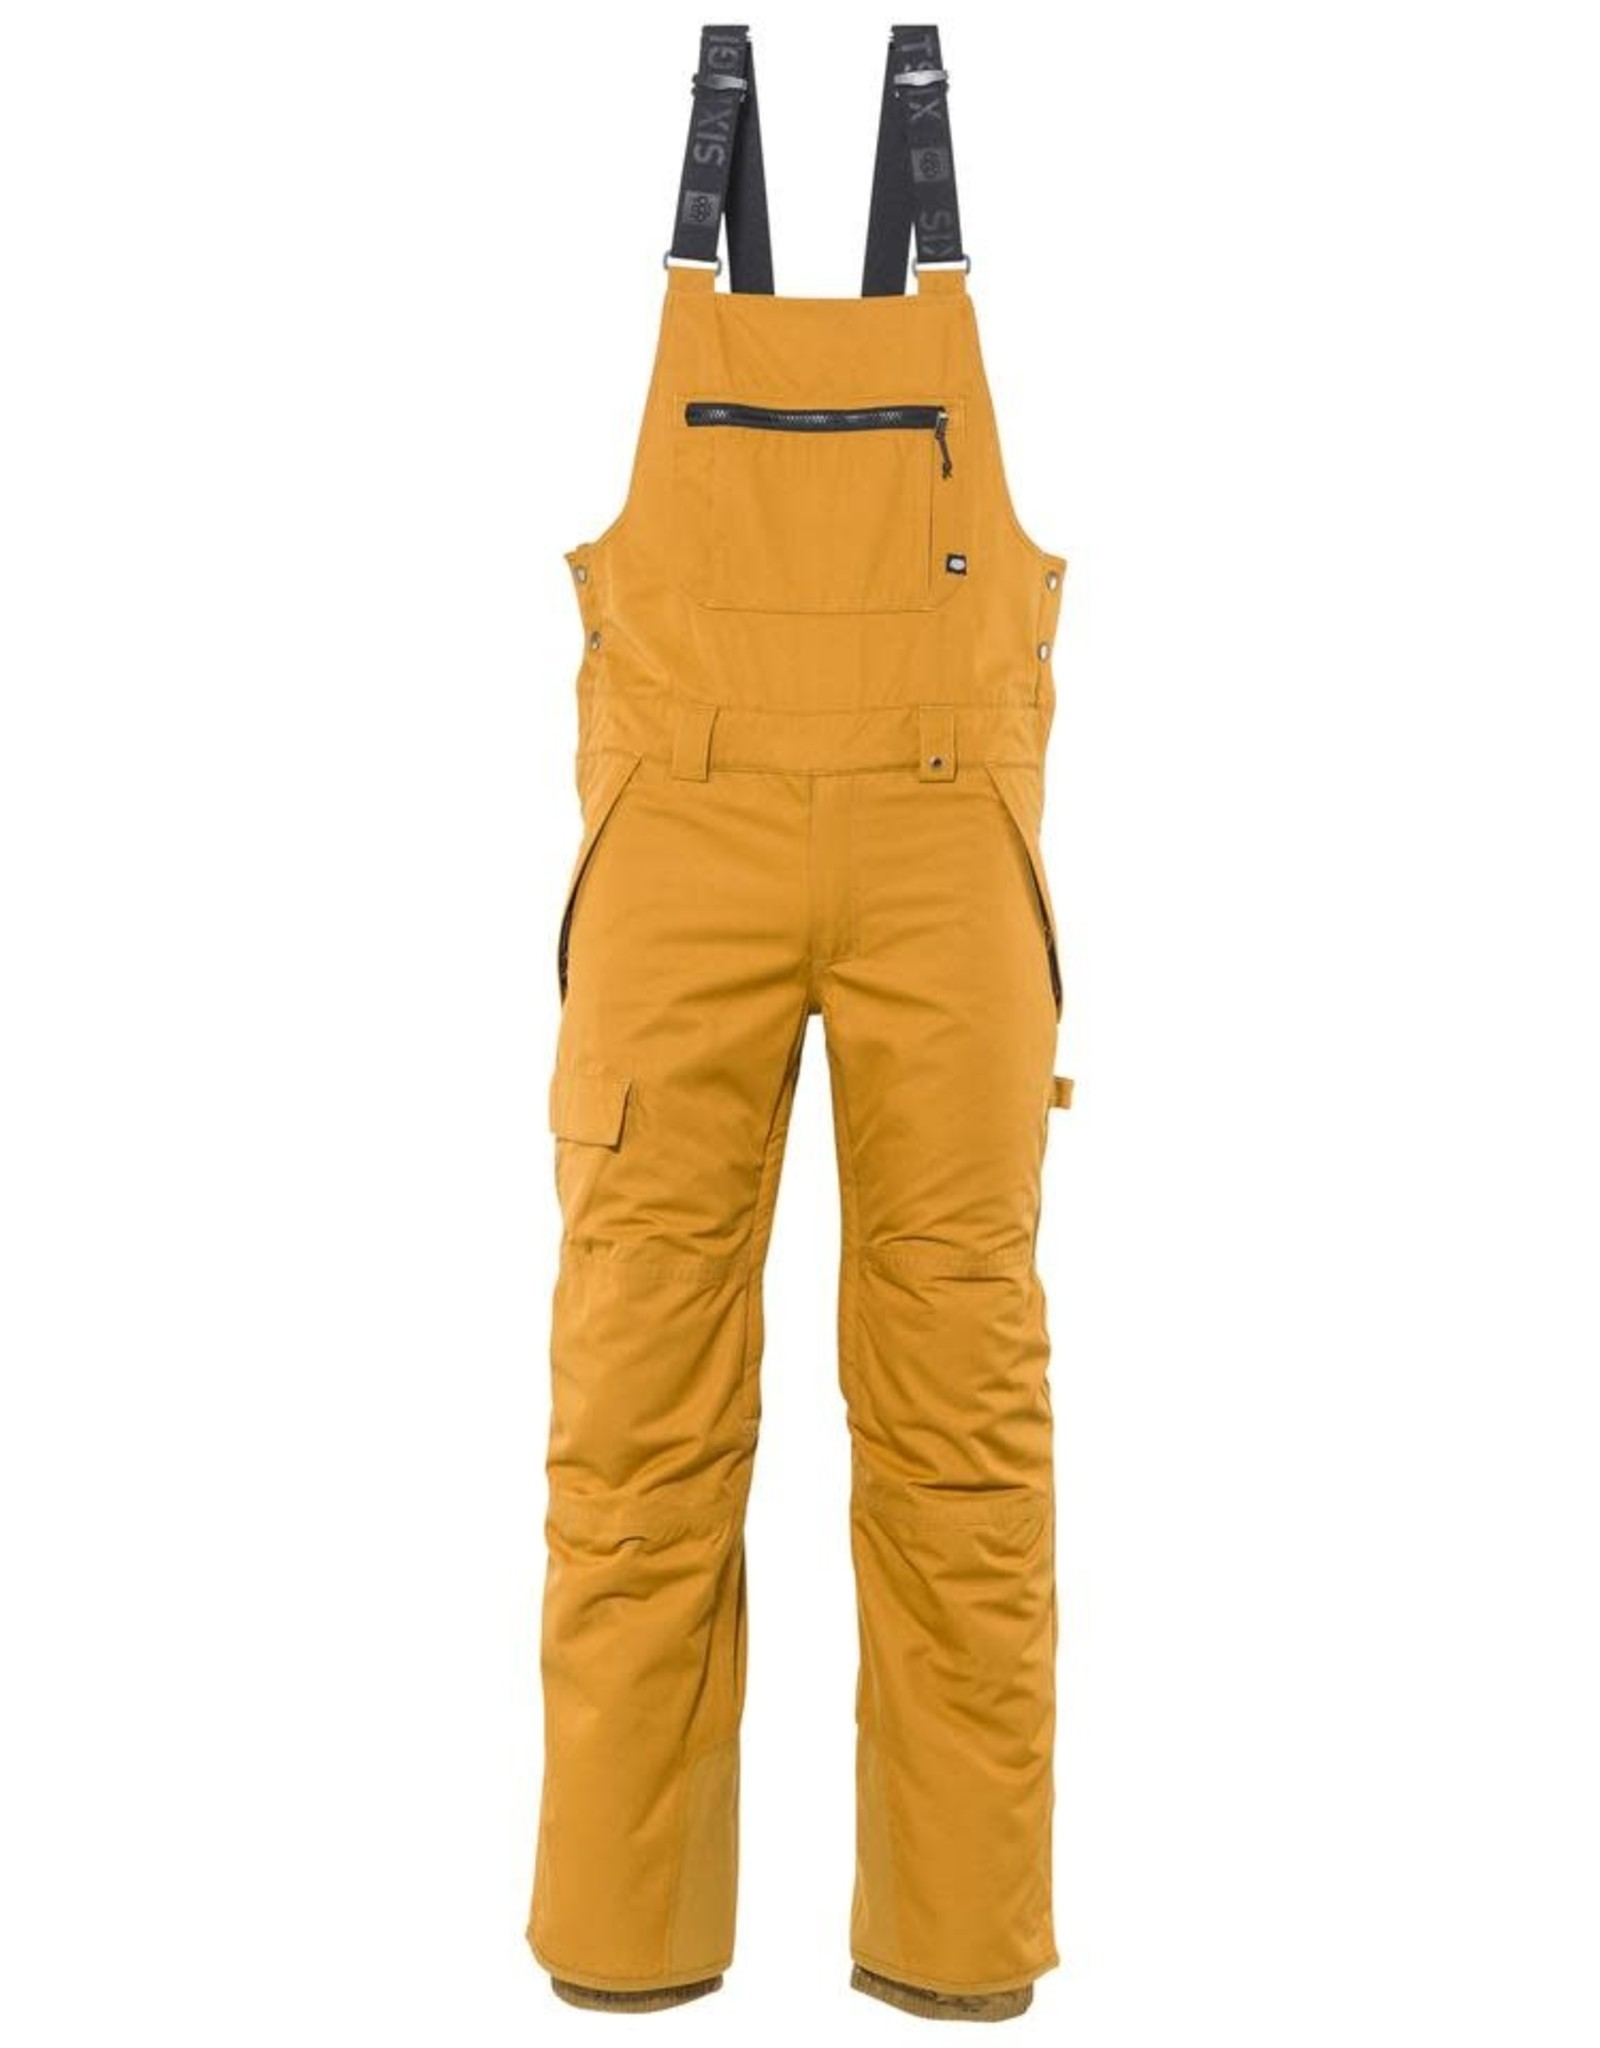 686 686 - Pantalon homme hot lab insulated bib golden brown